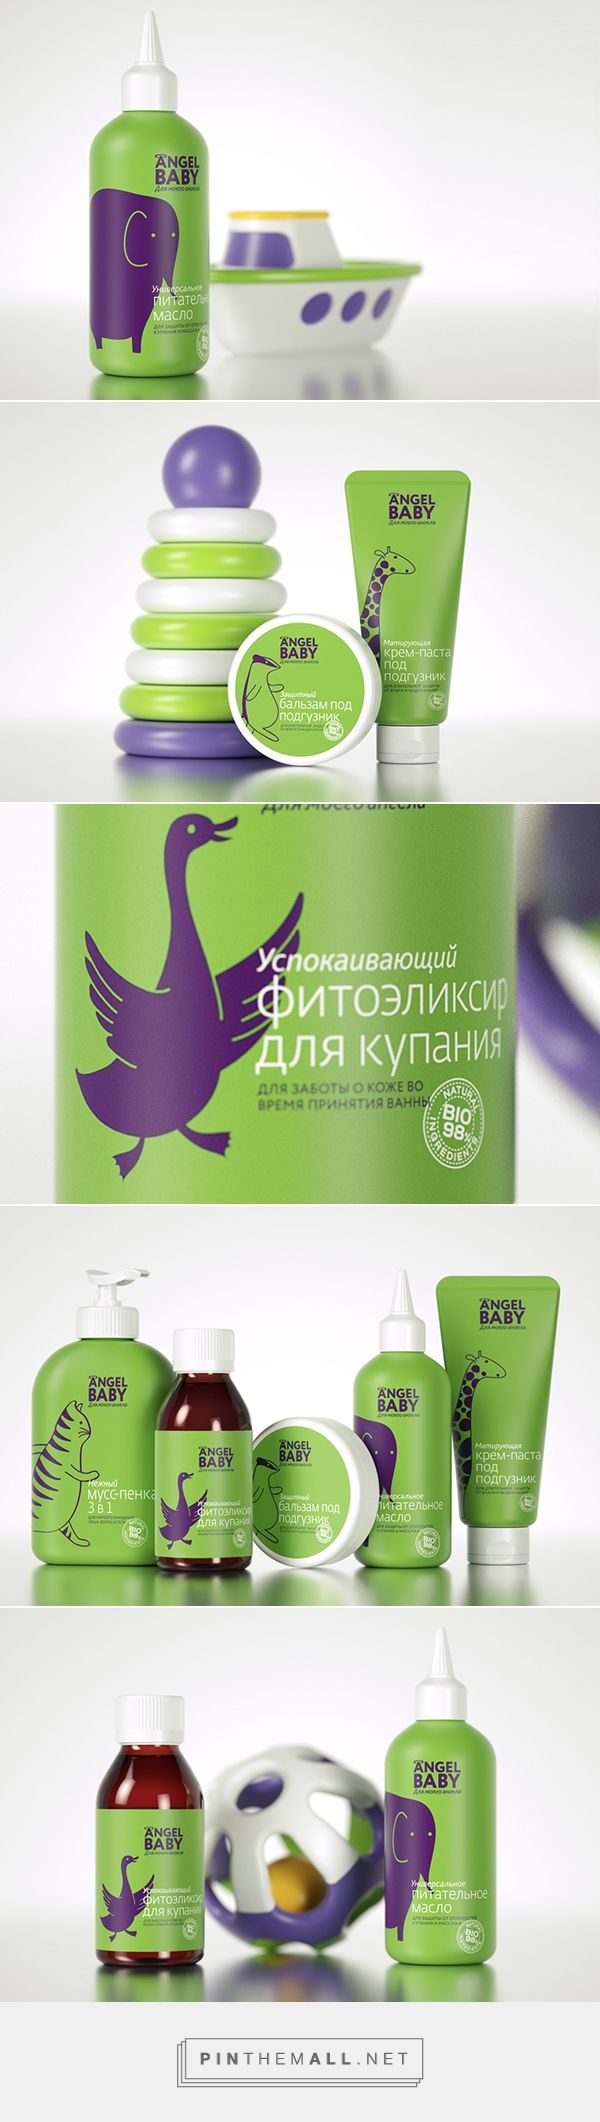 """Cosmetics packaging """"Angel Baby"""" /  Ohmybrand branding studio Moscow, Russian Federation. Pale green shade close to the color of grass, together with white and violet, highlights how natural and eco-friendly this product line is.PD"""